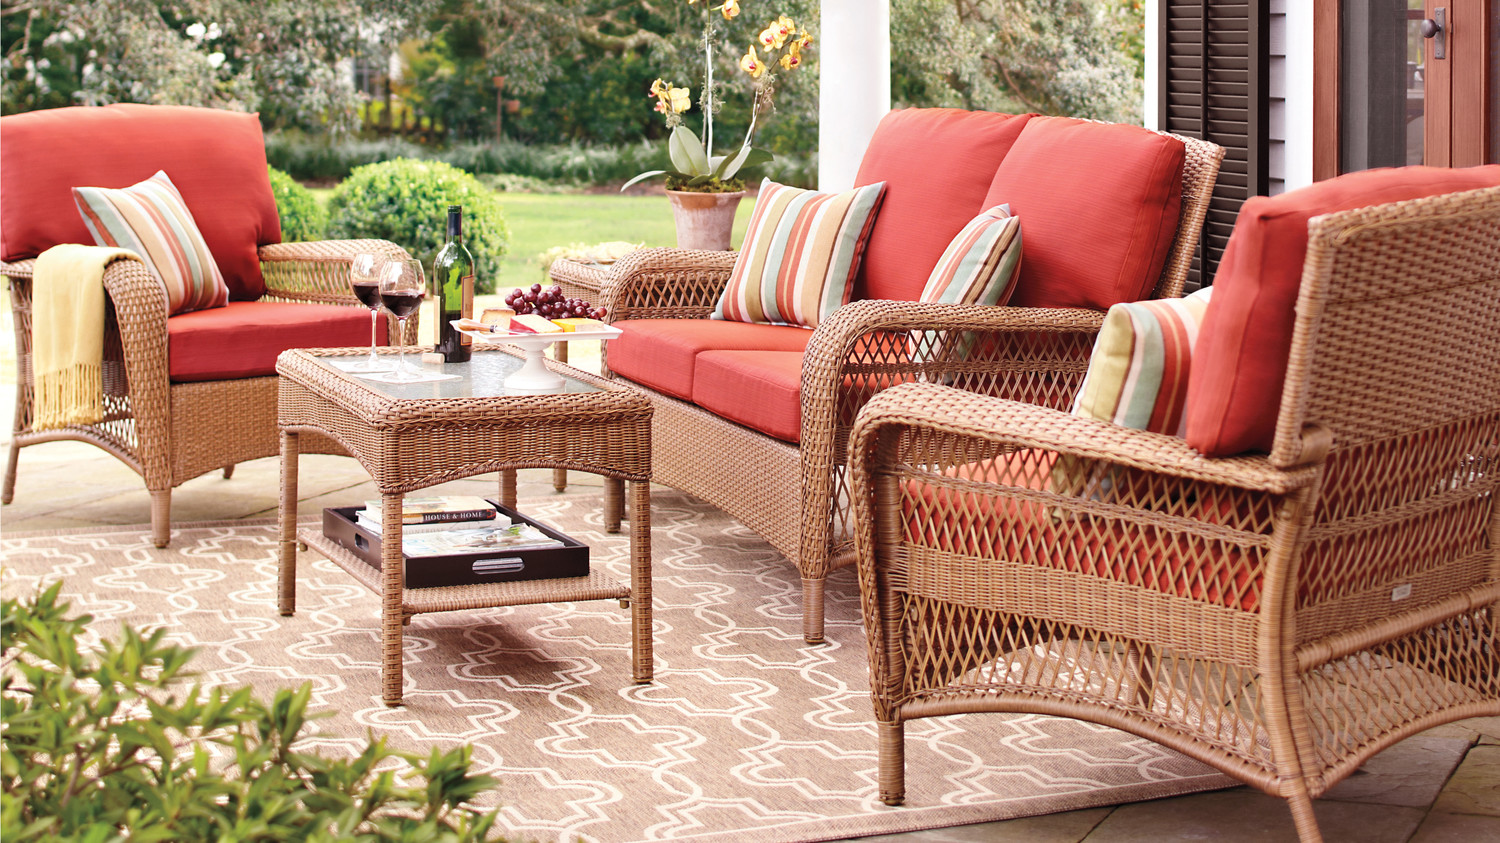 Looking to Refresh Your Patio  Here Are 3 Looks to Try    Martha StewartLooking to Refresh Your Patio  Here Are 3 Looks to Try    Martha  . Martha Stewart Living Patio Furniture Lake Adela. Home Design Ideas